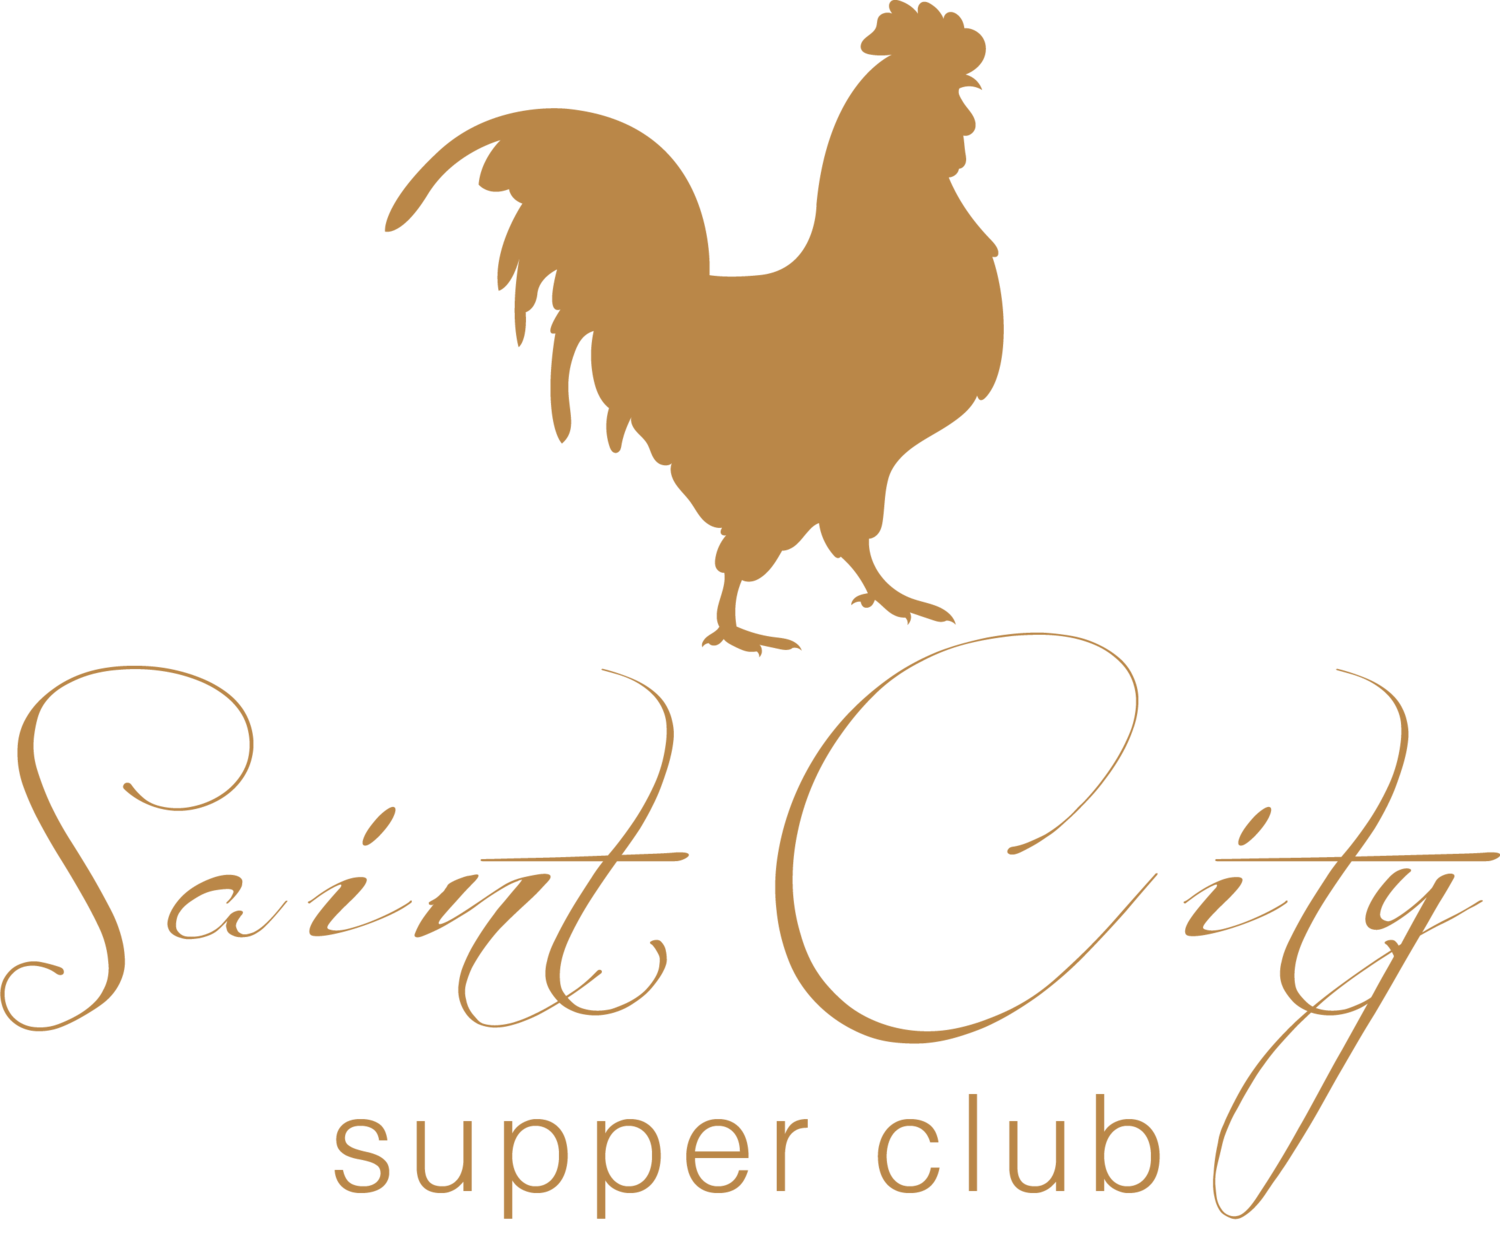 Saint City Supper Club